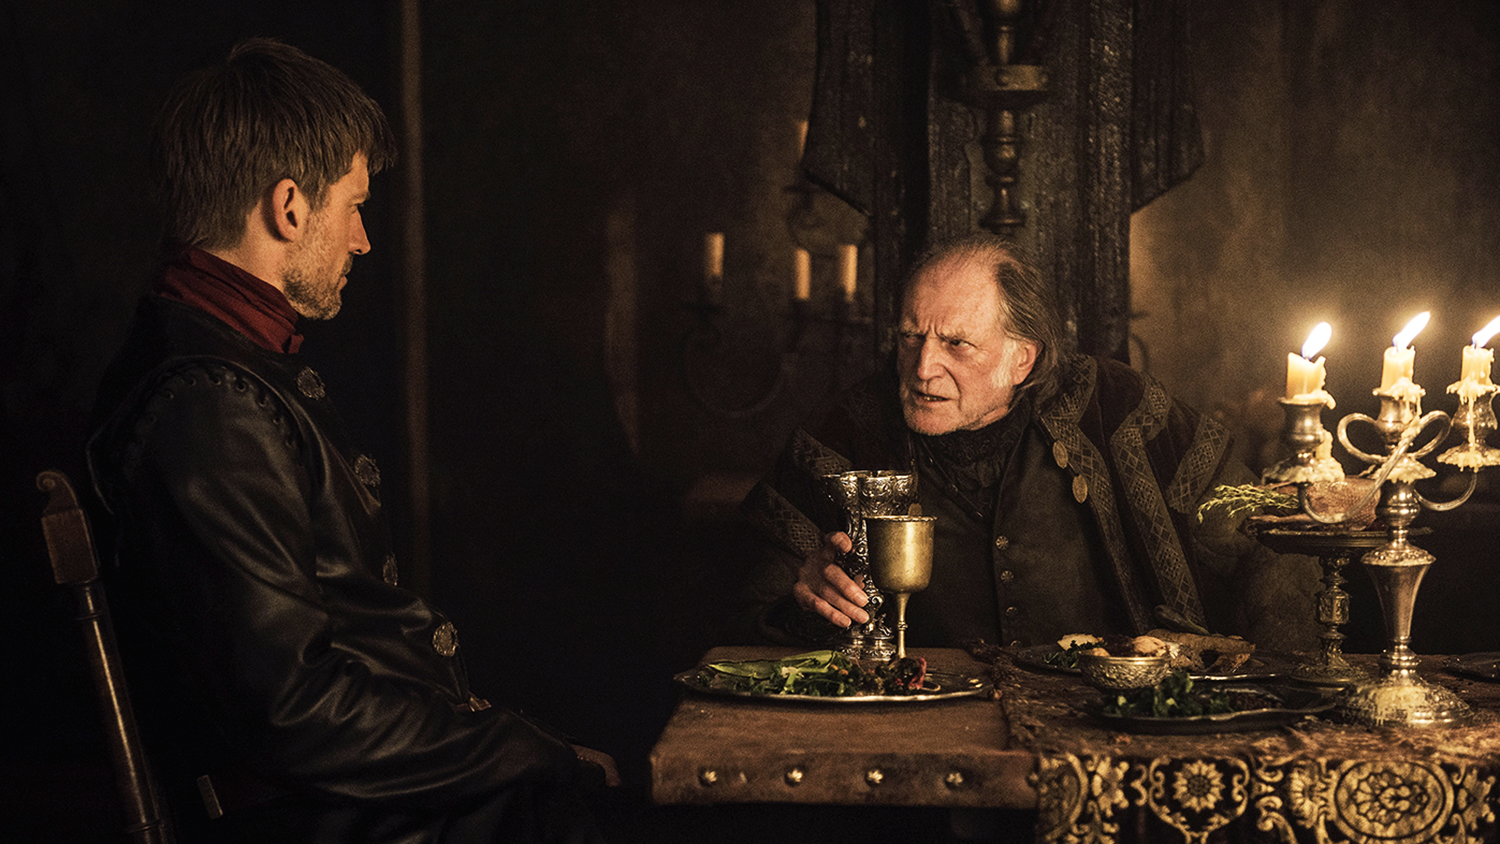 game of thrones jamie lannister and frey over food